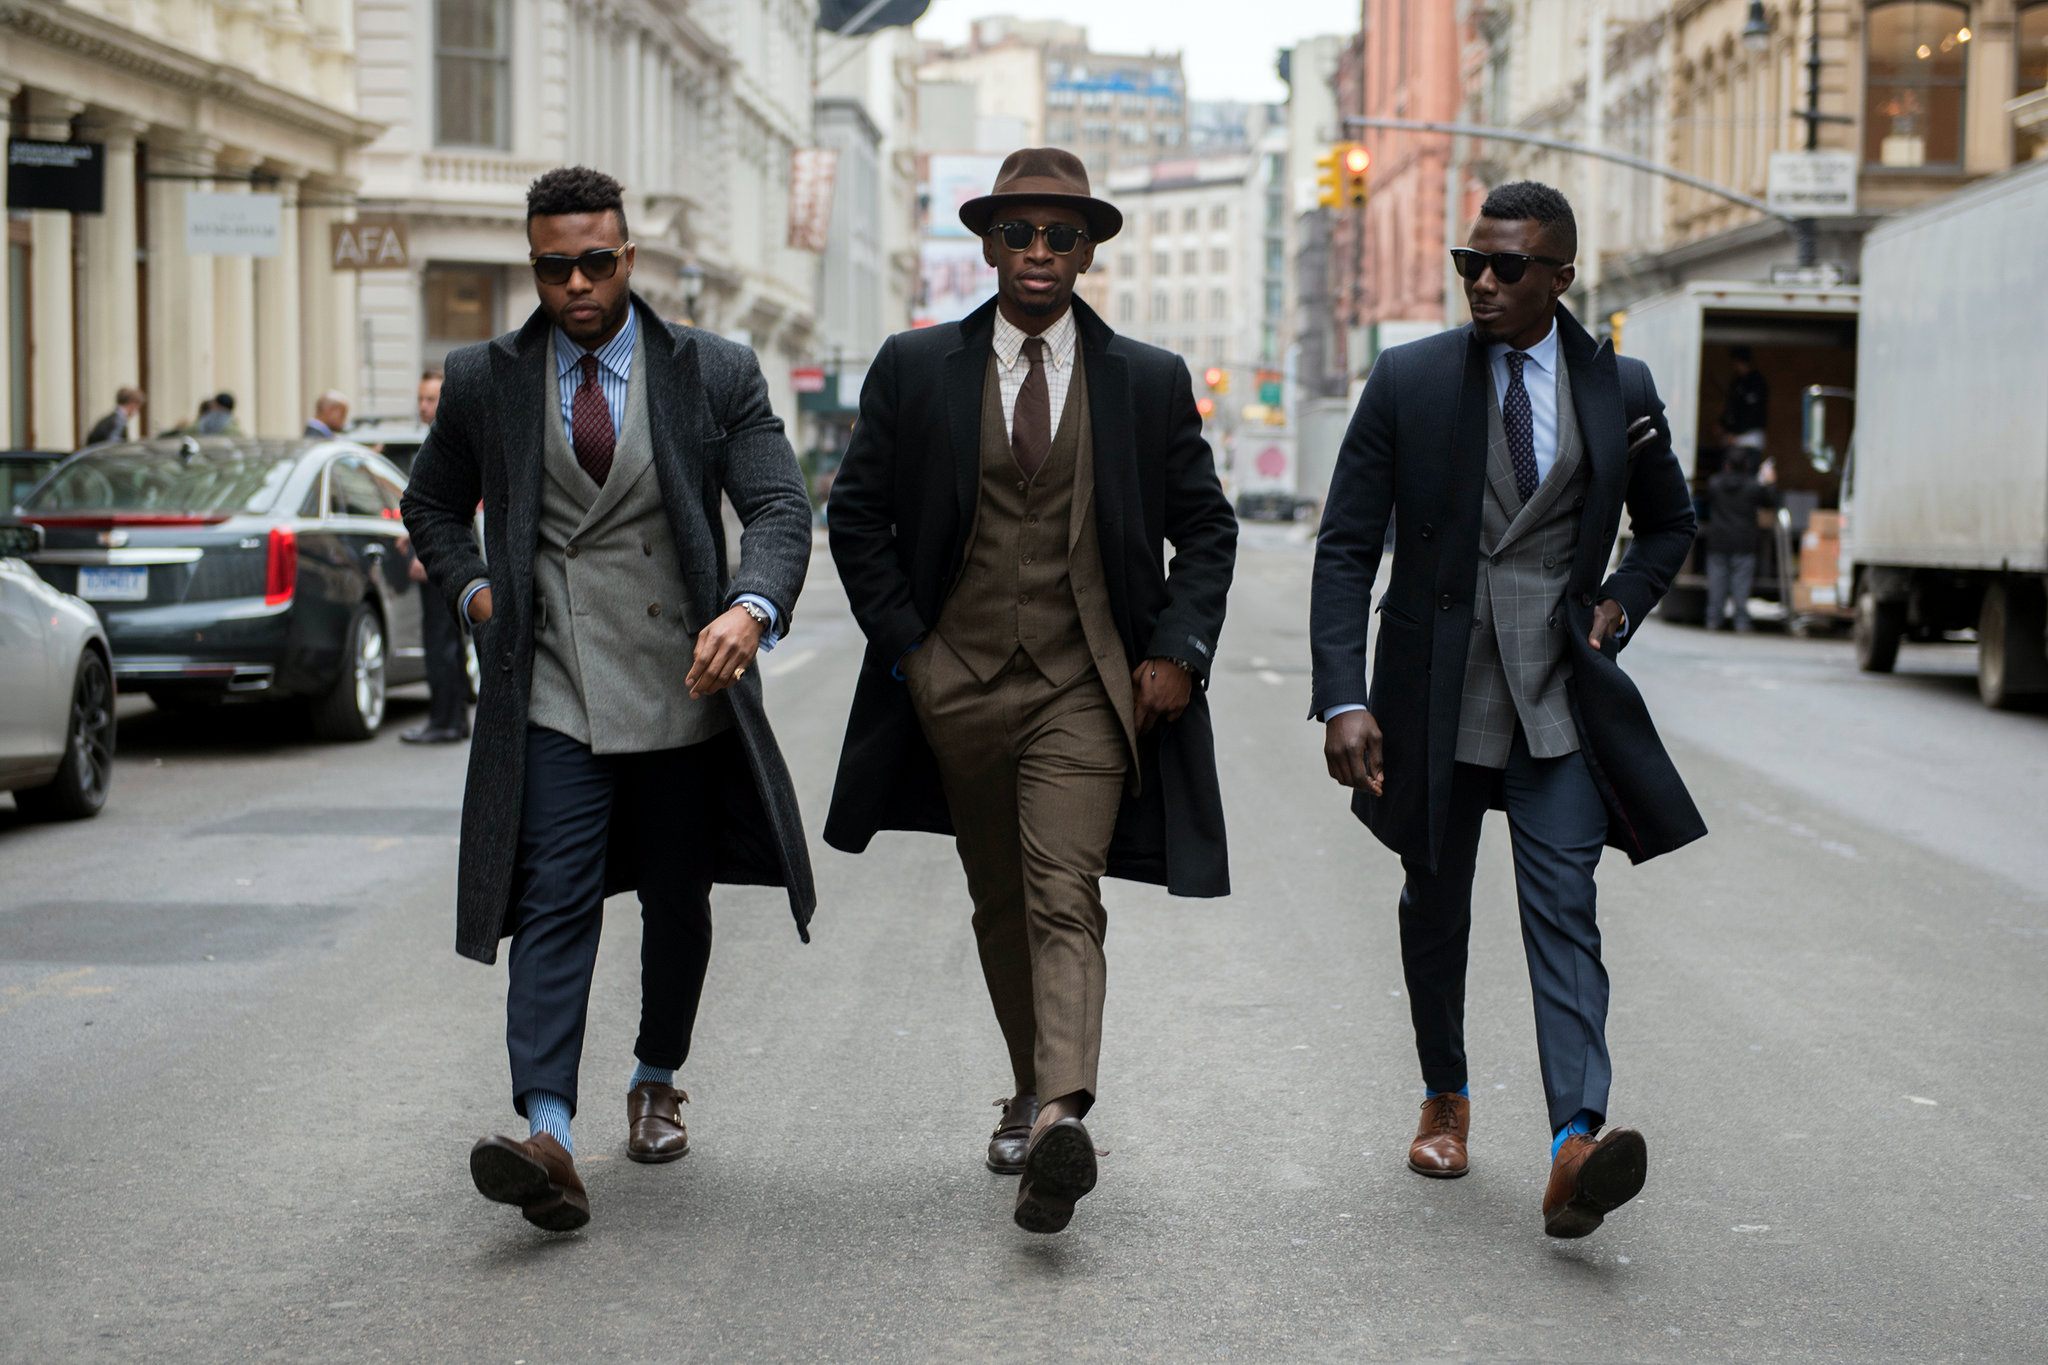 classy black men in suits walking on the street